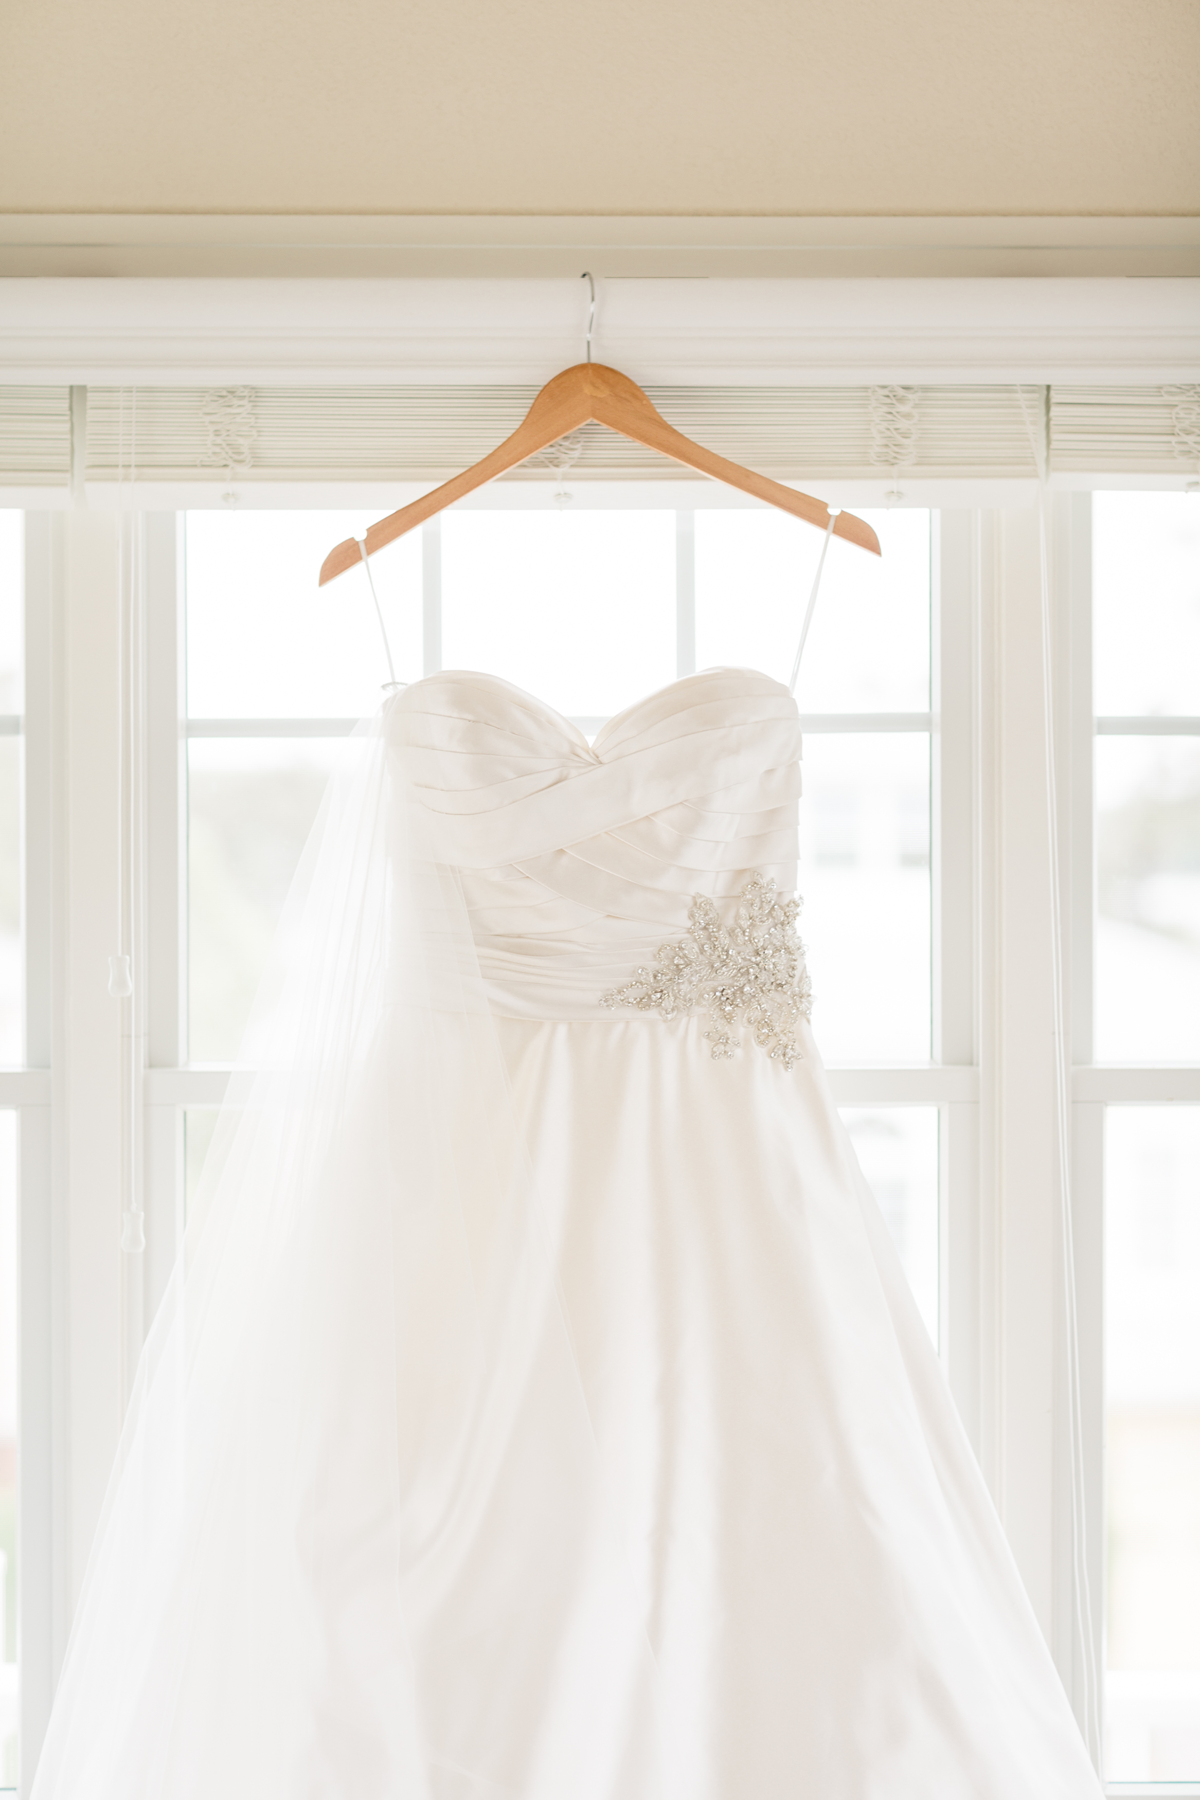 i-cape-charles-wedding-dress